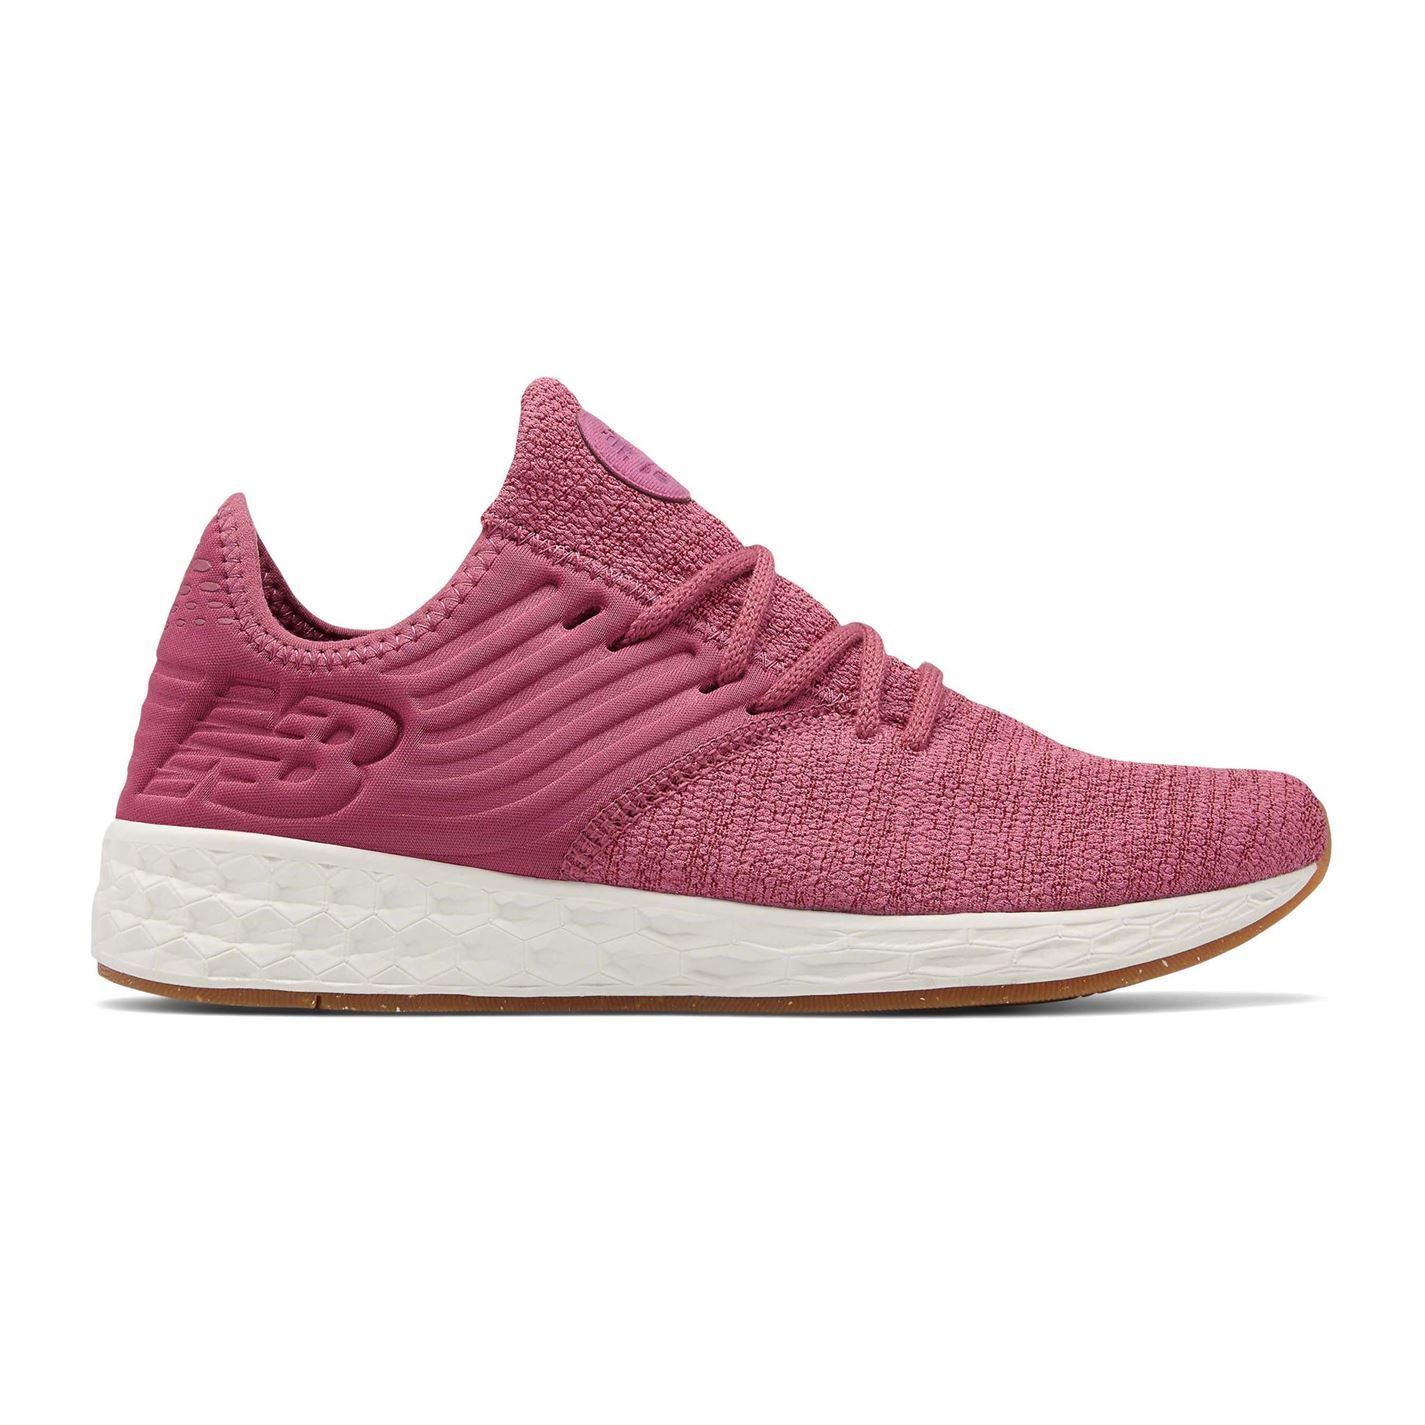 Femme New Balance Foam Cruz Decon Trainers Runners Lace Up Textured New